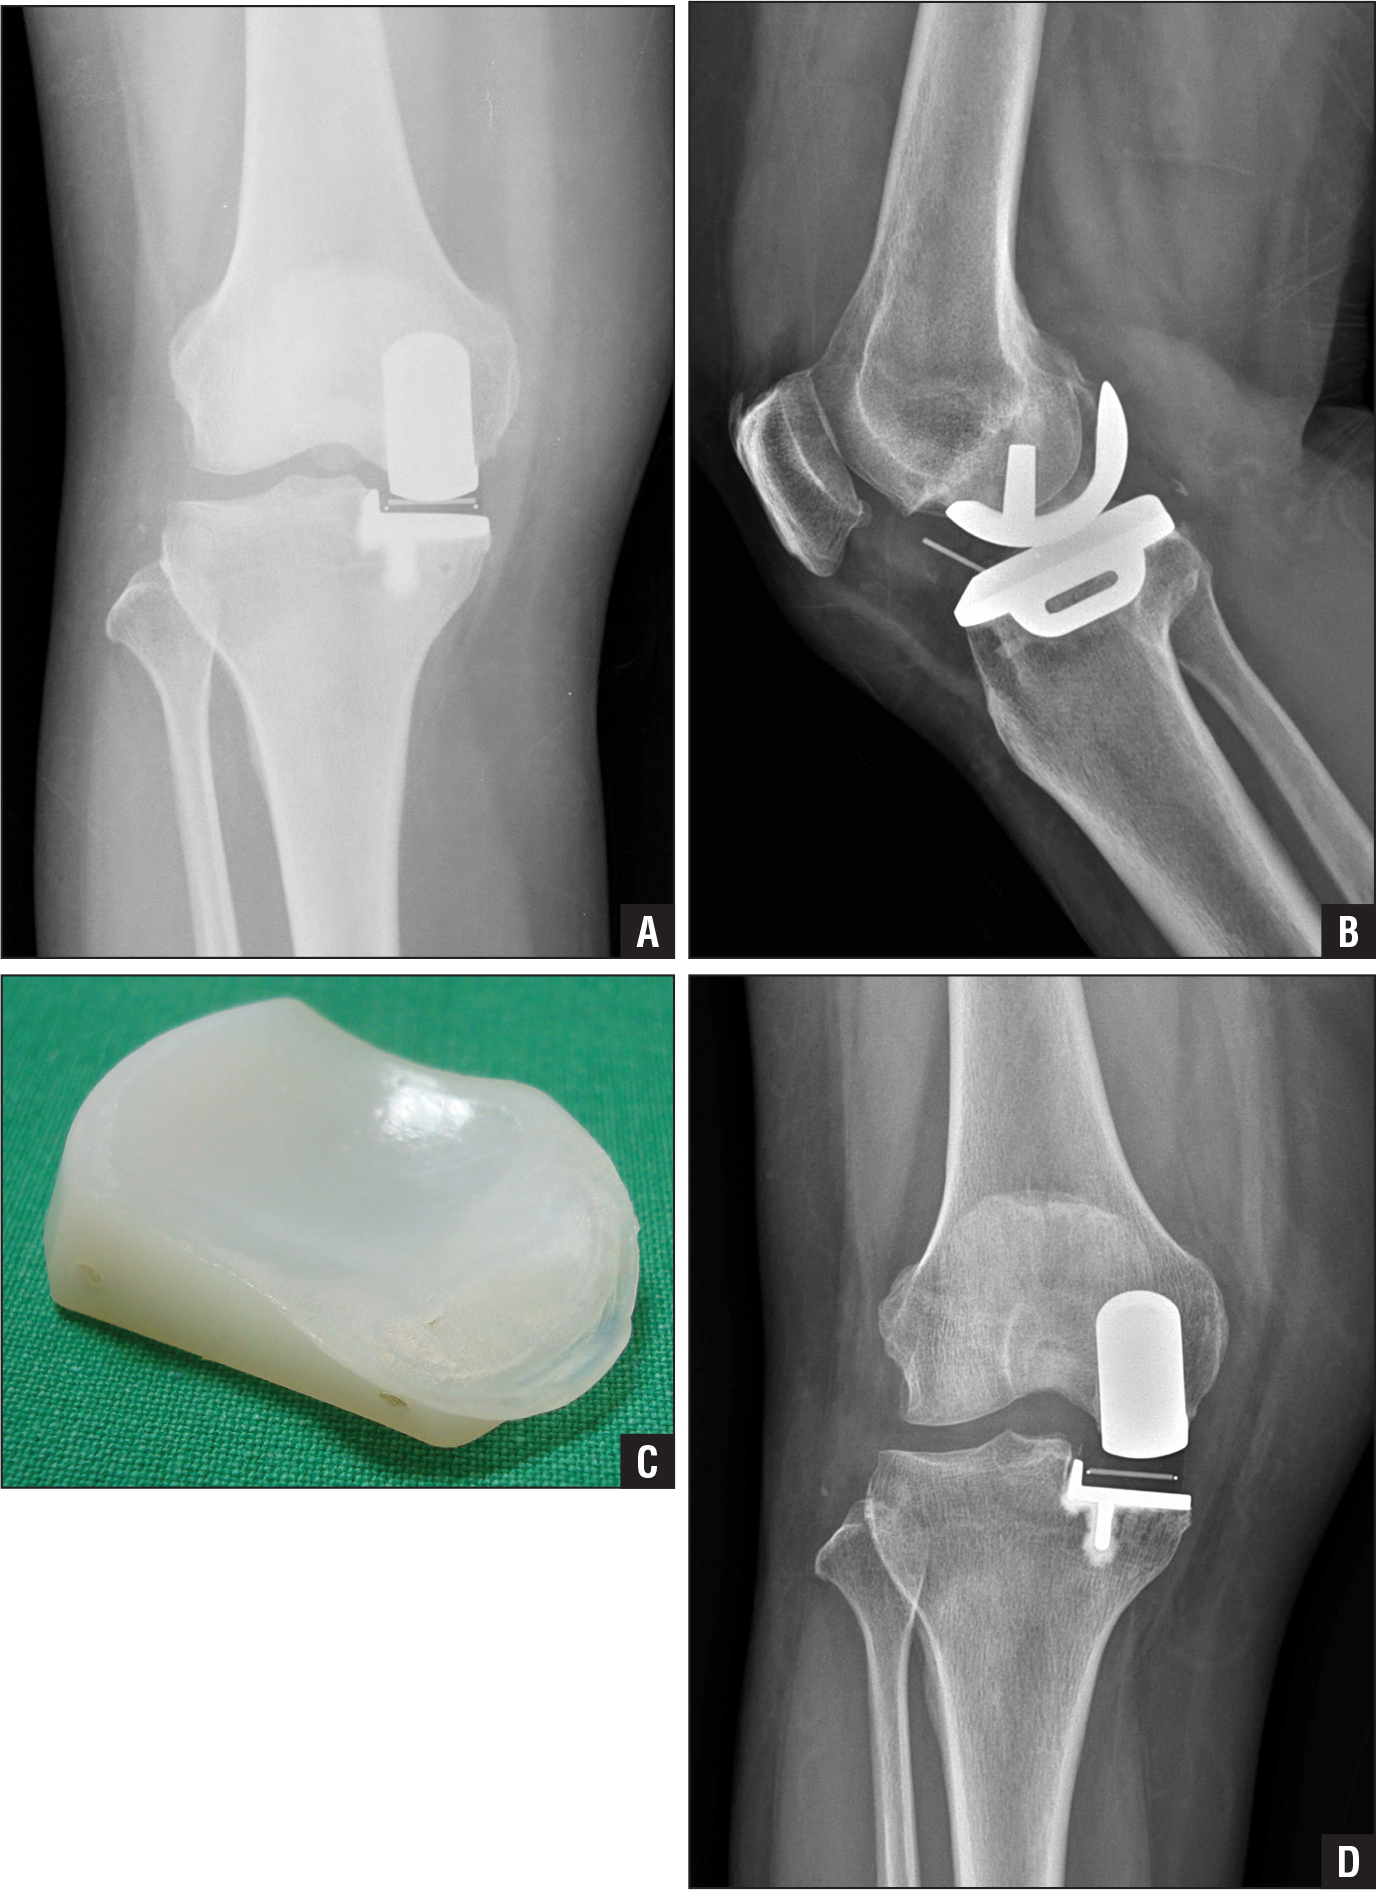 Postoperative anteroposterior radiograph showing well-aligned femoral and tibial components (A). Lateral radiograph showing the mobile meniscal bearing dislocated anteriorly (B). Photograph of the retrieved meniscal bearing showing macroscopic wear on its superior articular surface in the posterior edge (C). Anteroposterior radiograph after exchange of the worn meniscal bearing with a thicker bearing (D).